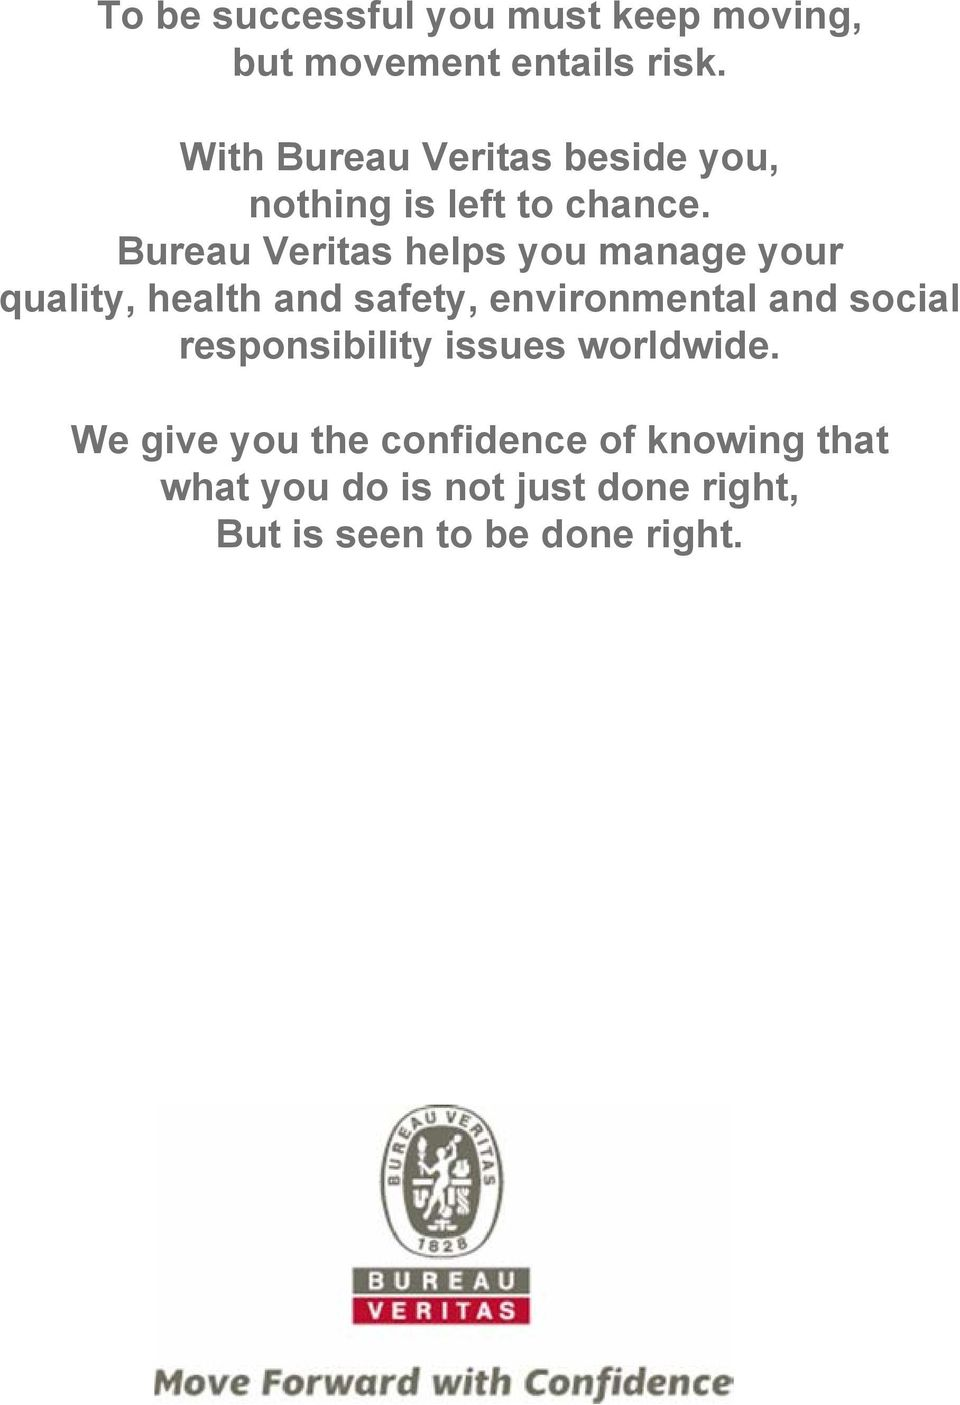 Bureau Veritas helps you manage your quality, health and safety, environmental and